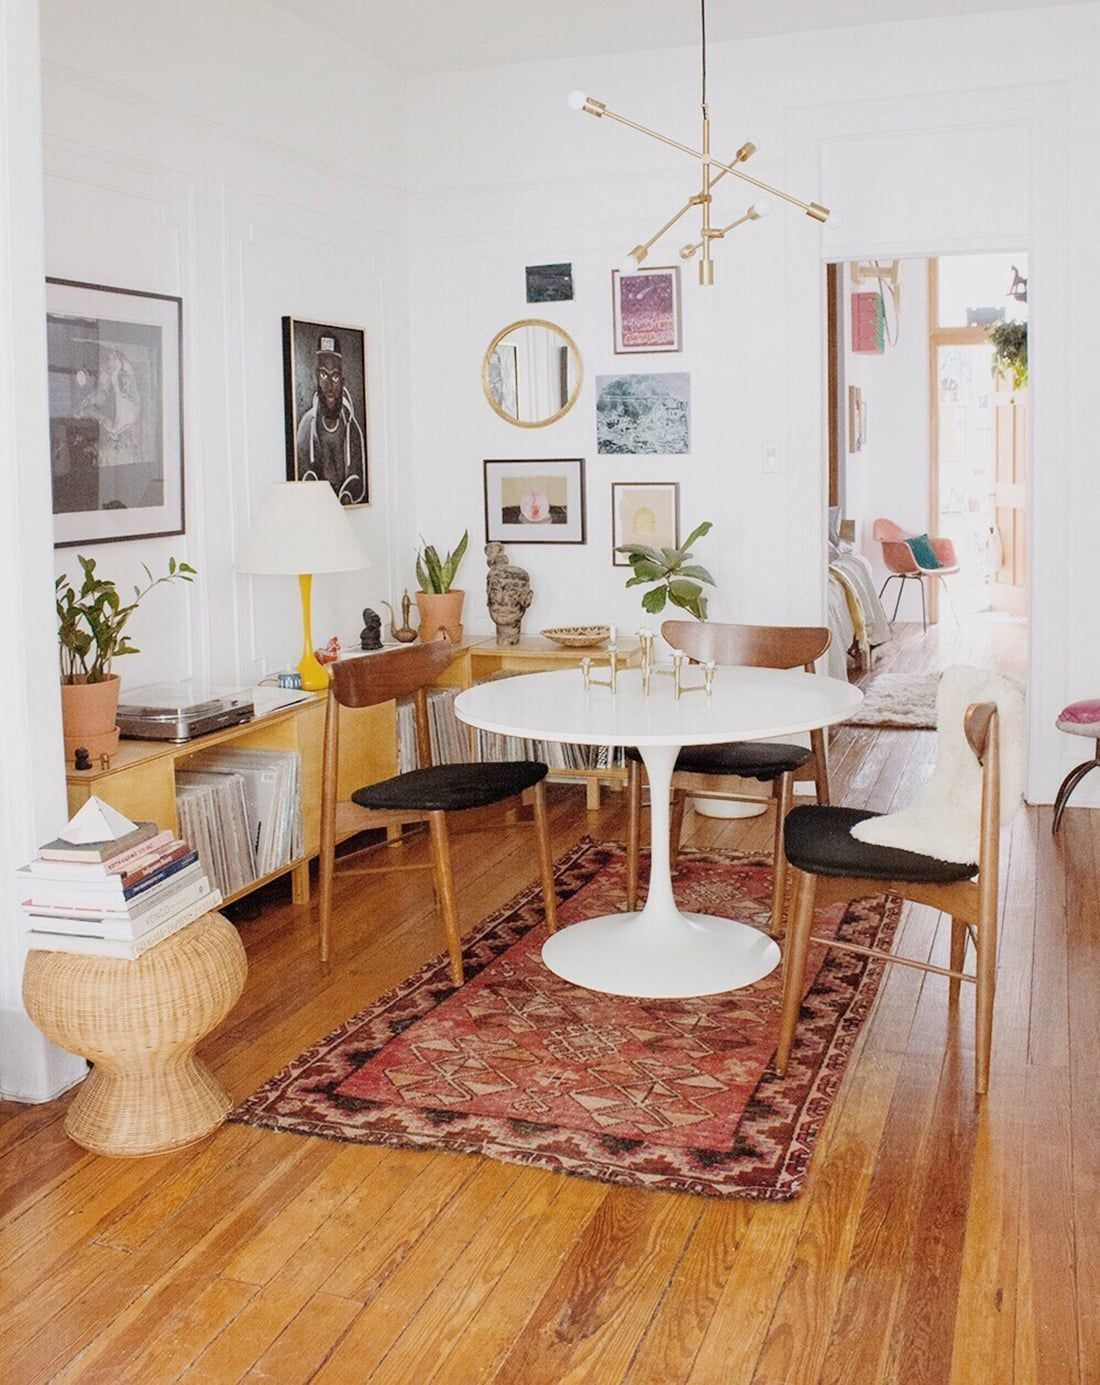 global cool gallery walls u2022 brooklyn home tour decor inspiration rh pinterest com